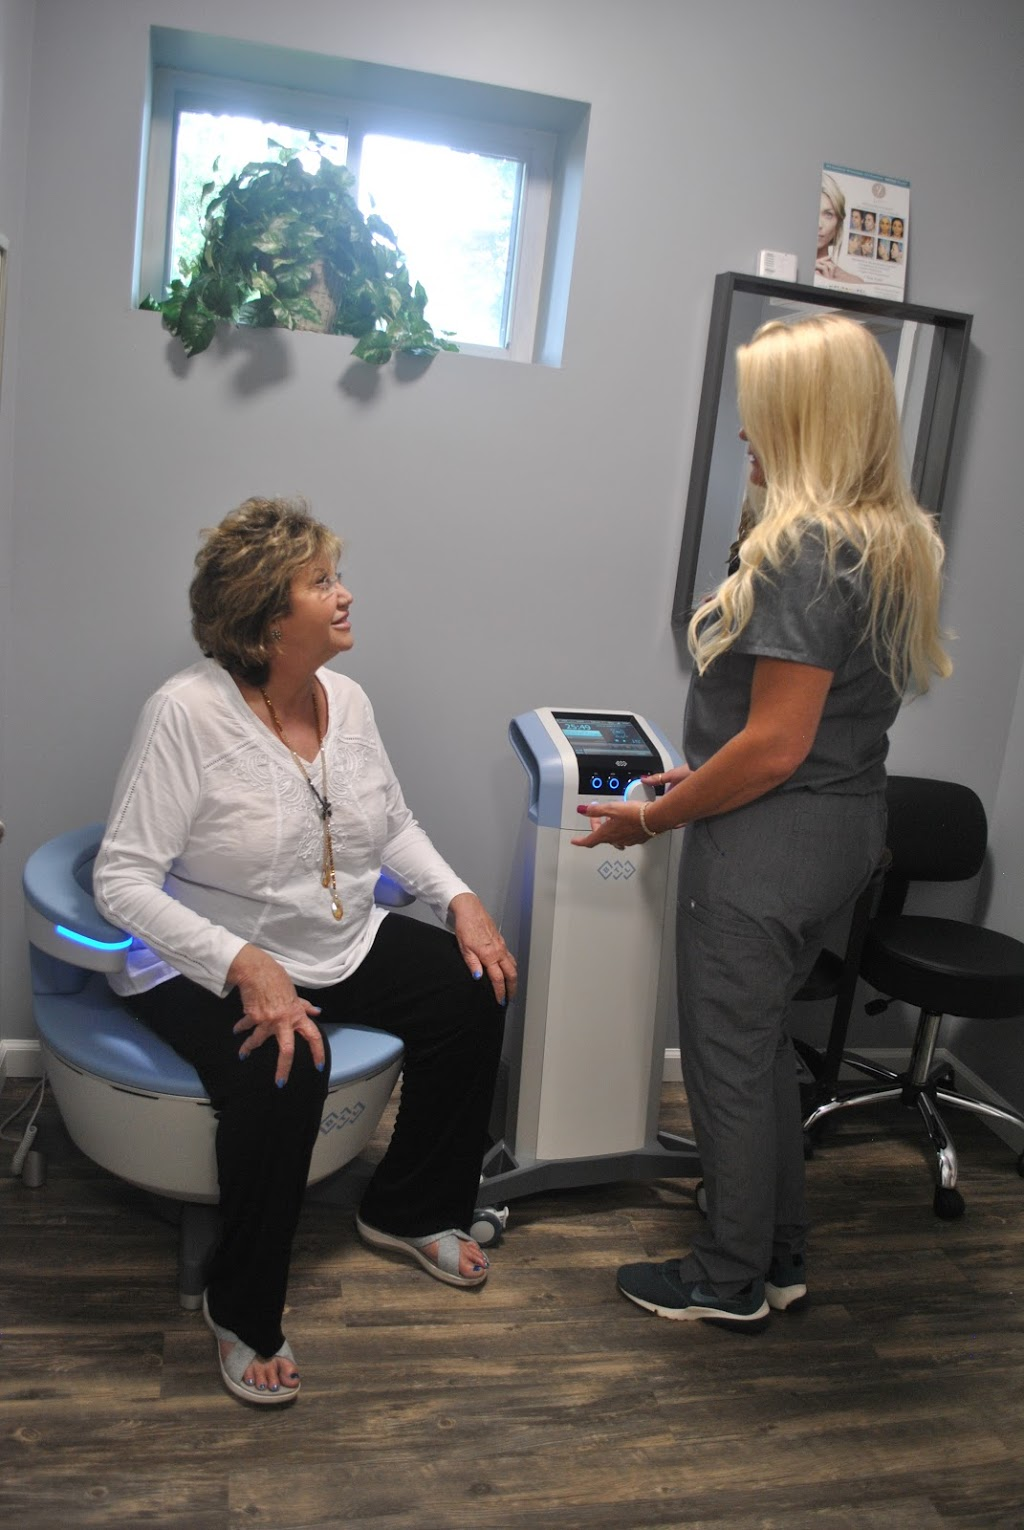 Dr. Mantors Wrinkle and Weight Solutions, LLC - hair care  | Photo 9 of 10 | Address: 6982 Worthington Rd, Westerville, OH 43082, USA | Phone: (614) 891-2000